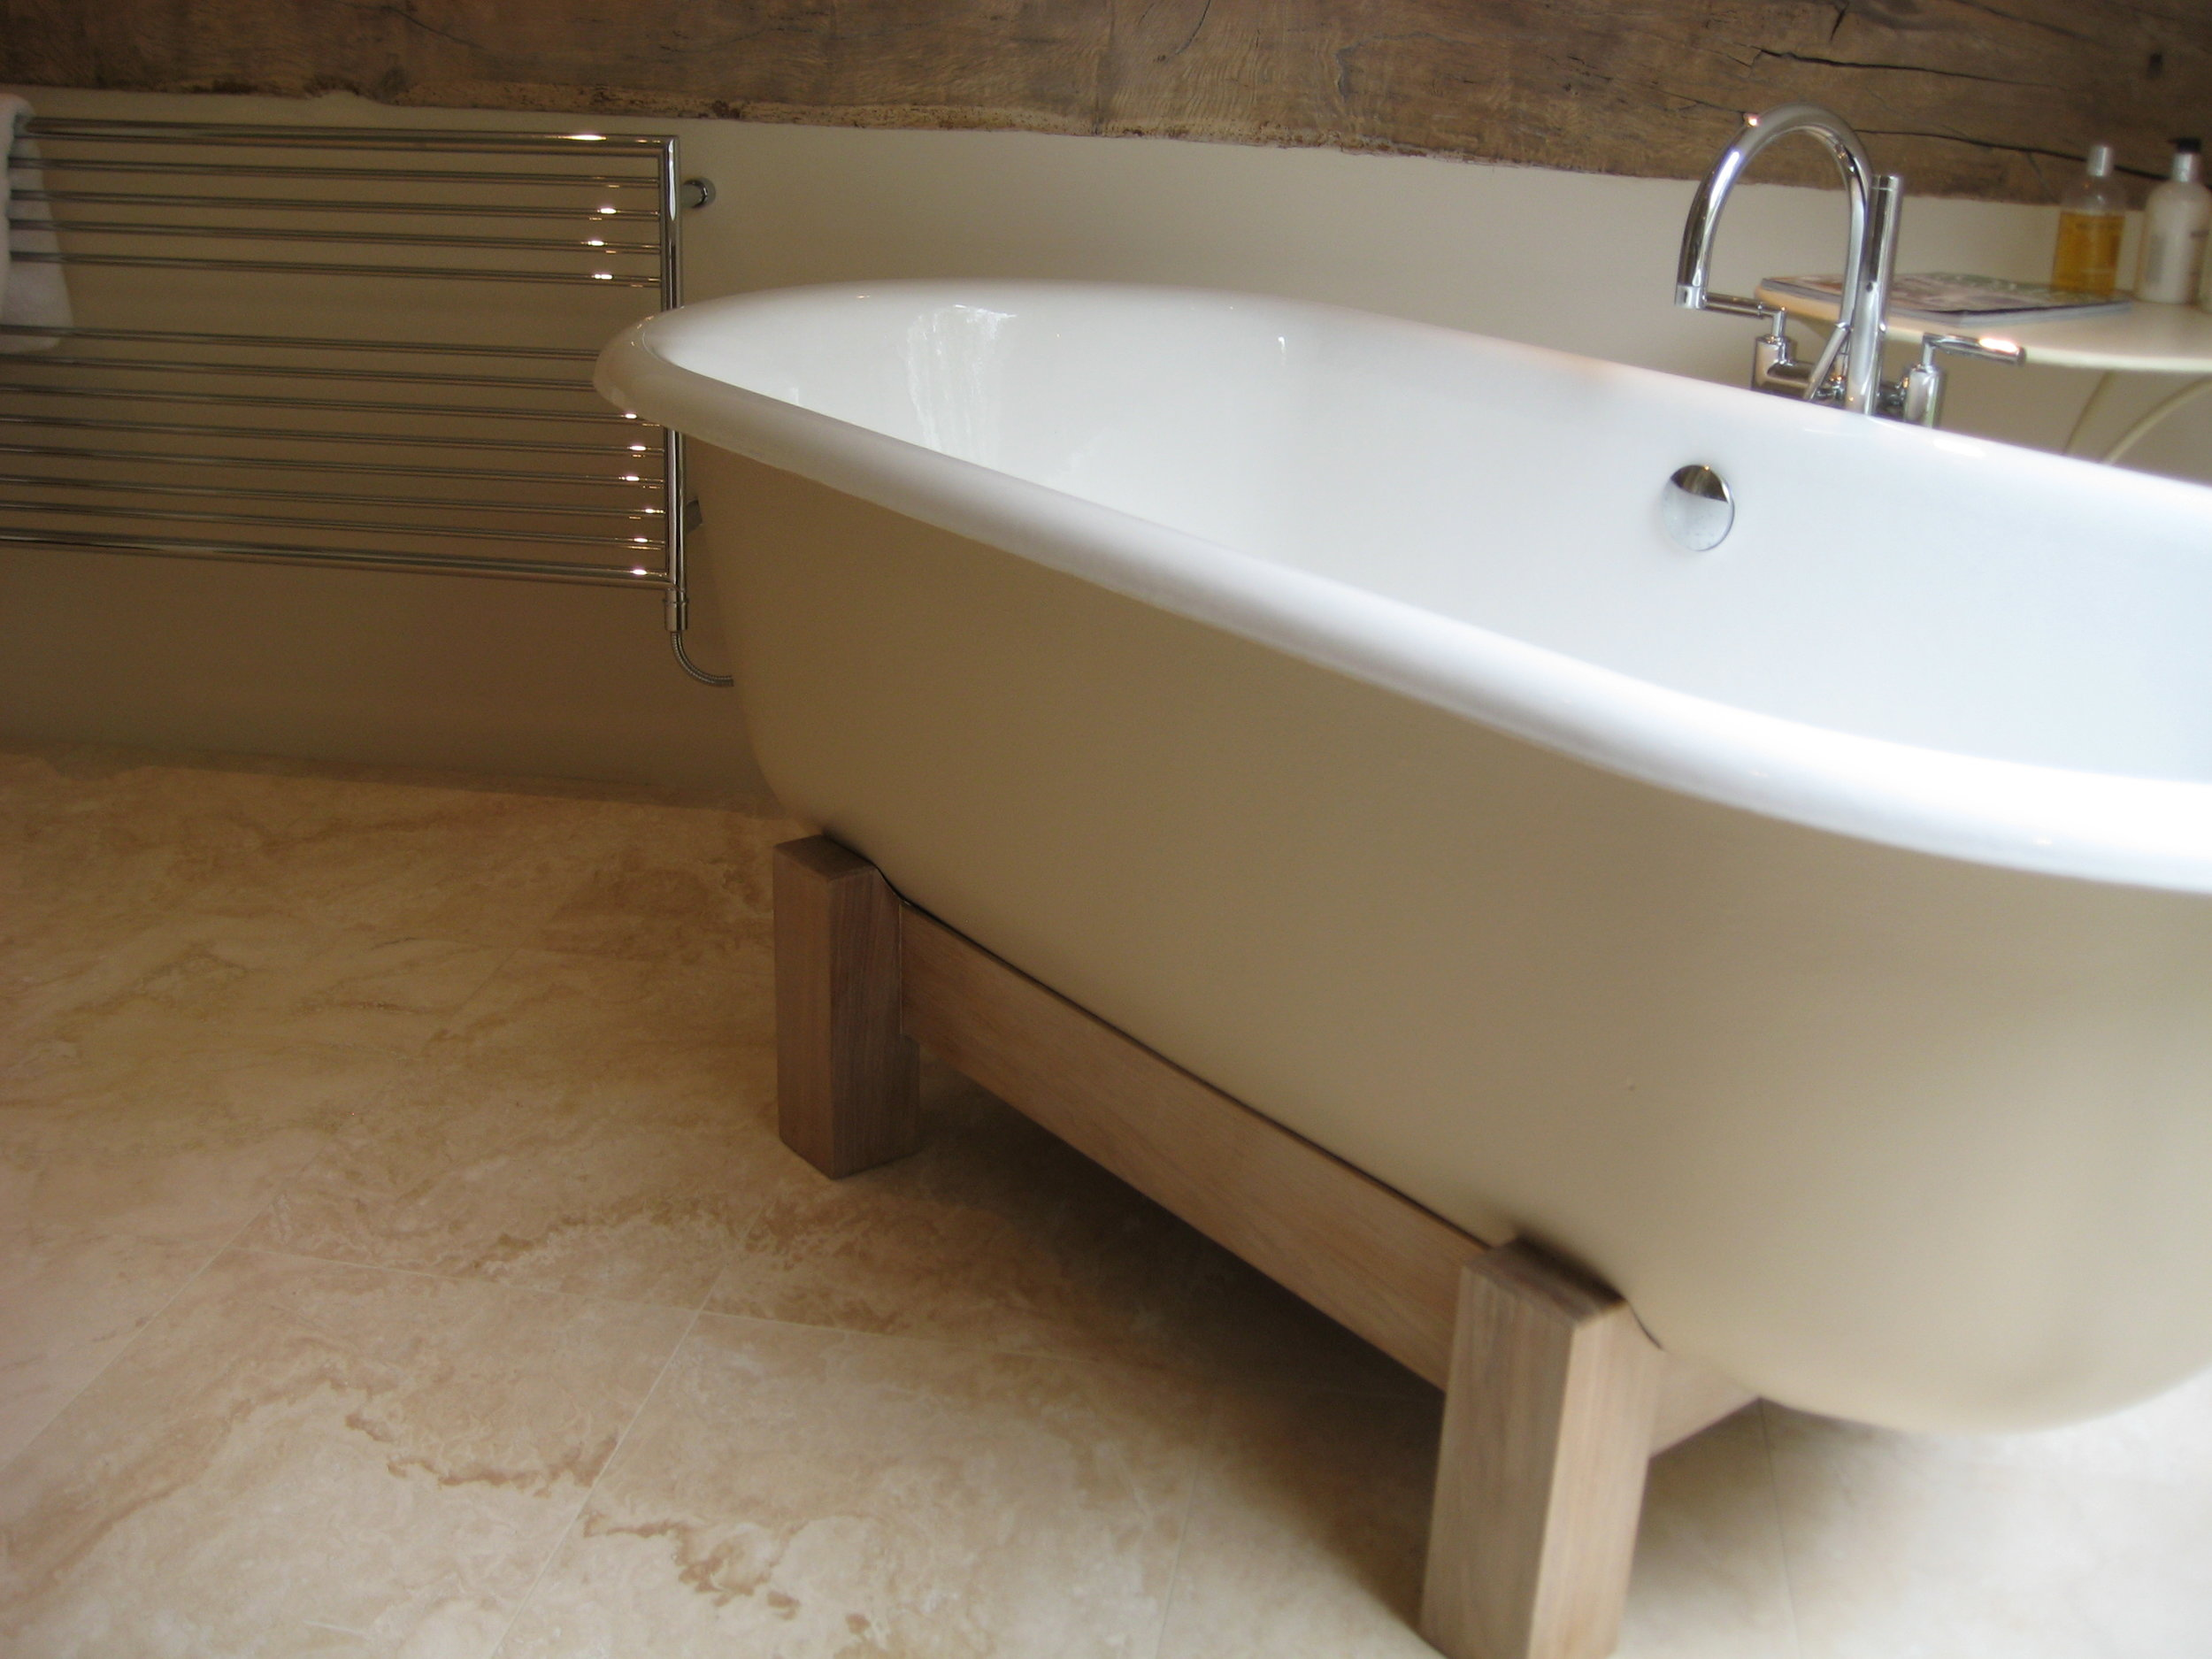 Contemporary bathroom design with freestanding bath on timber legs.